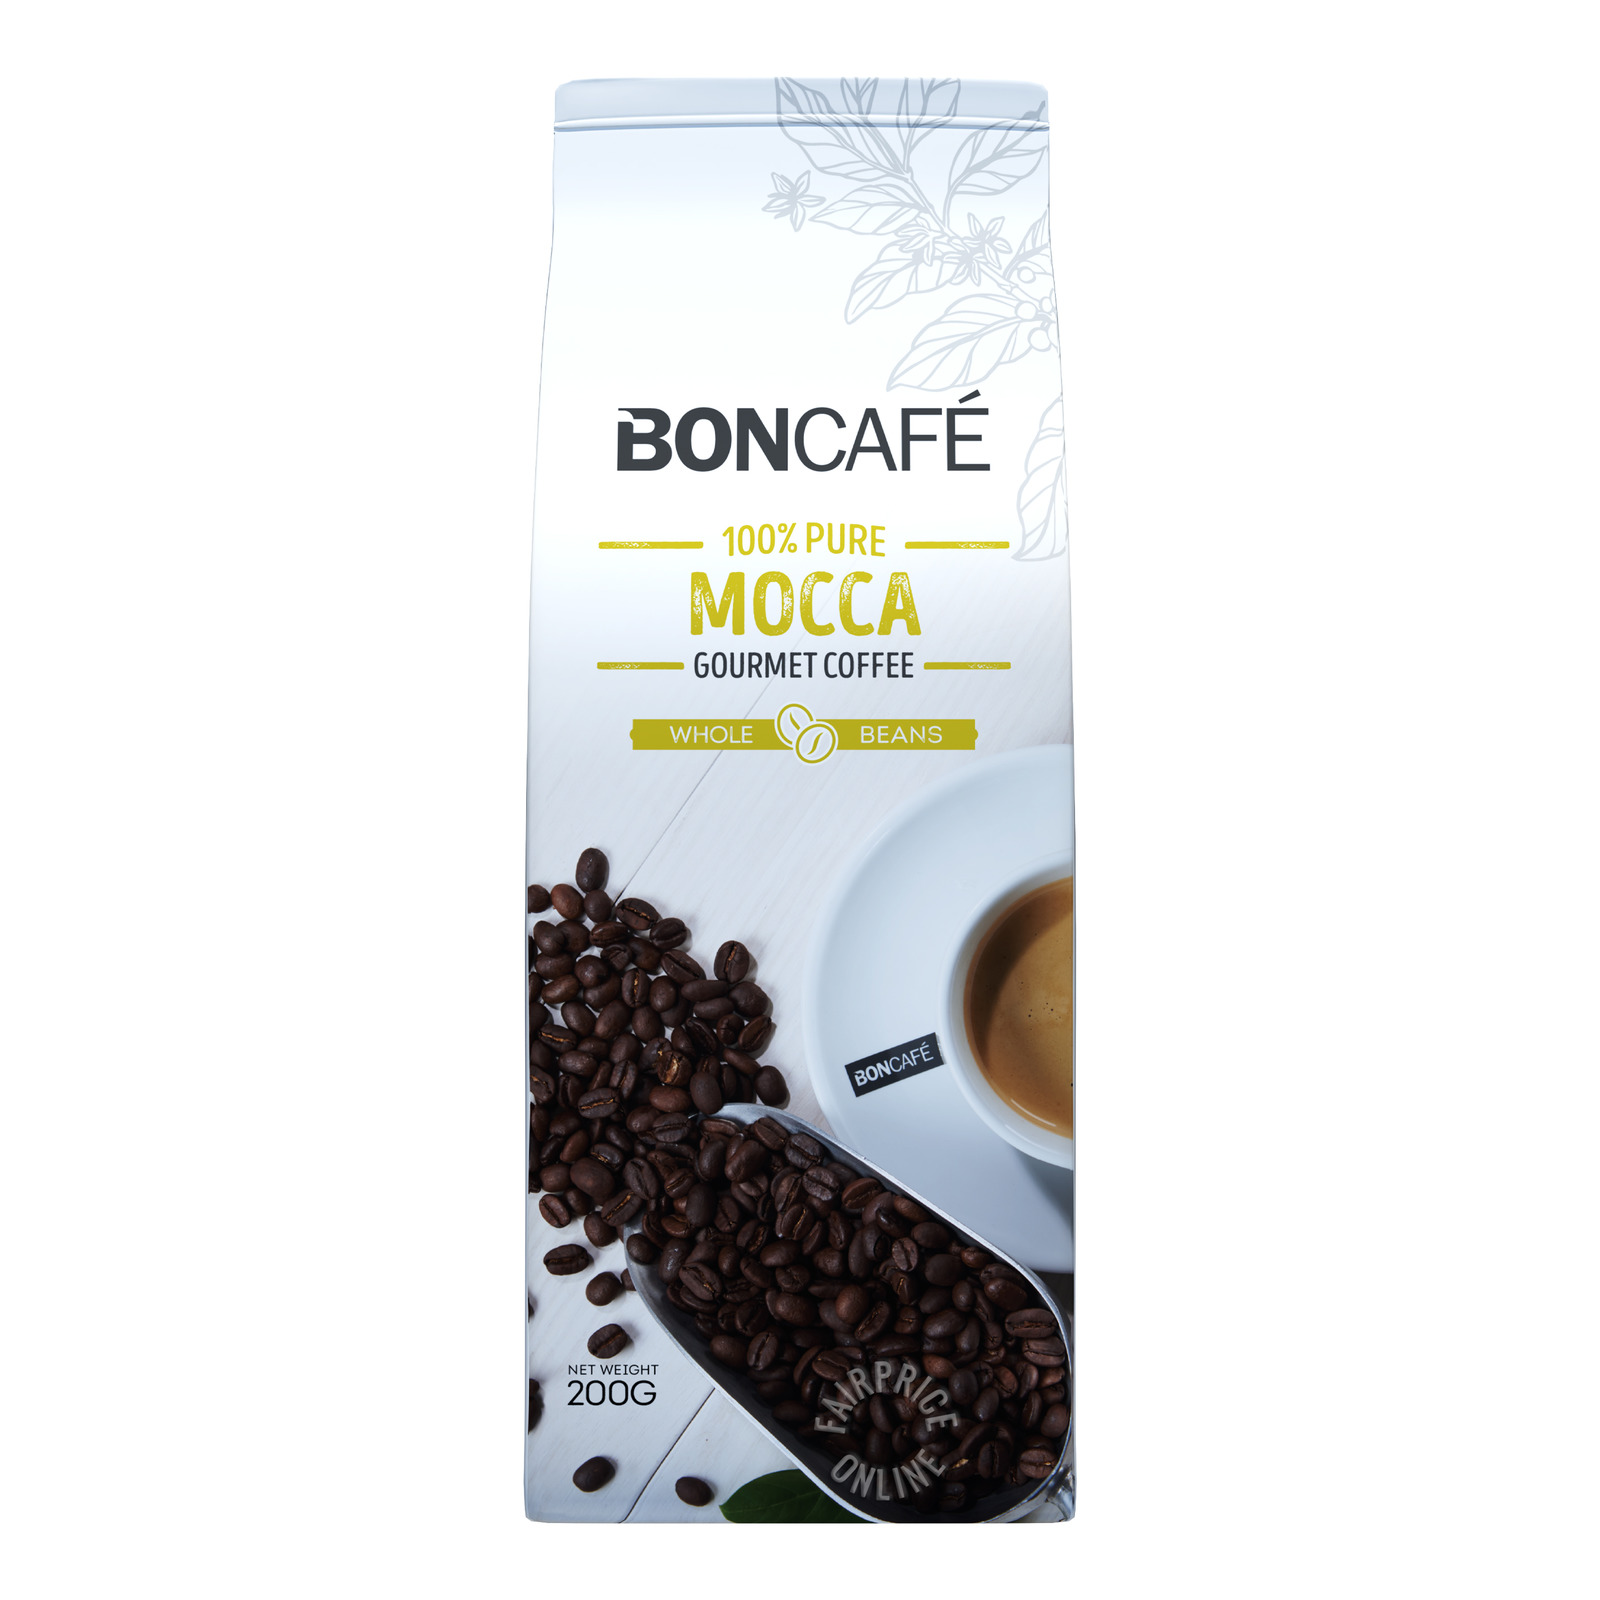 Boncafe Whole Bean Coffee - Mocca